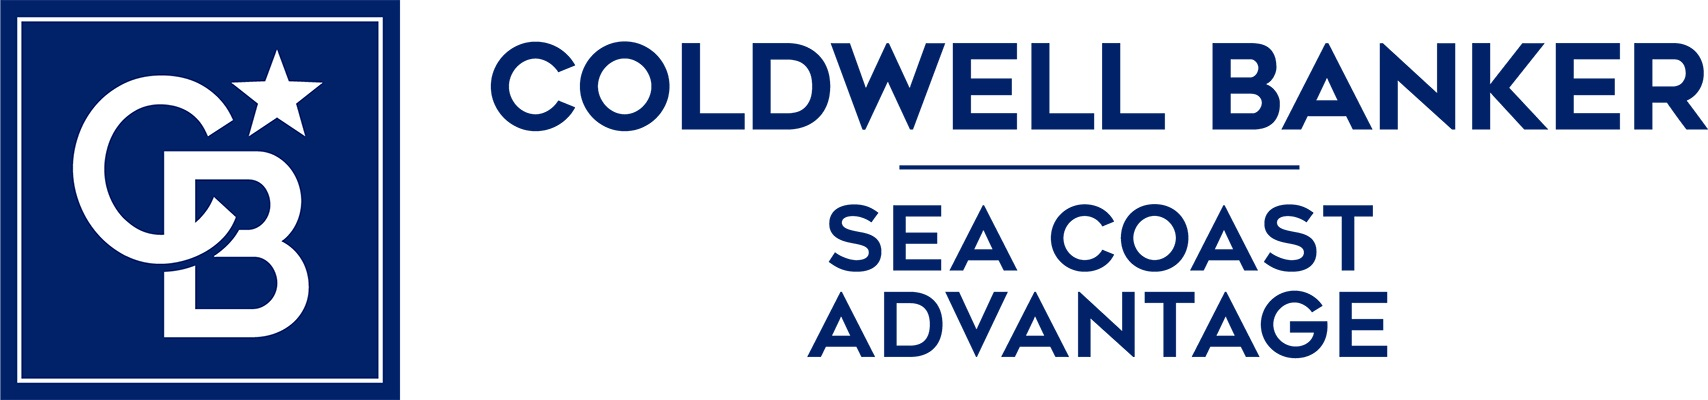 Steven Alverson - Coldwell Banker Sea Coast Advantage Realty